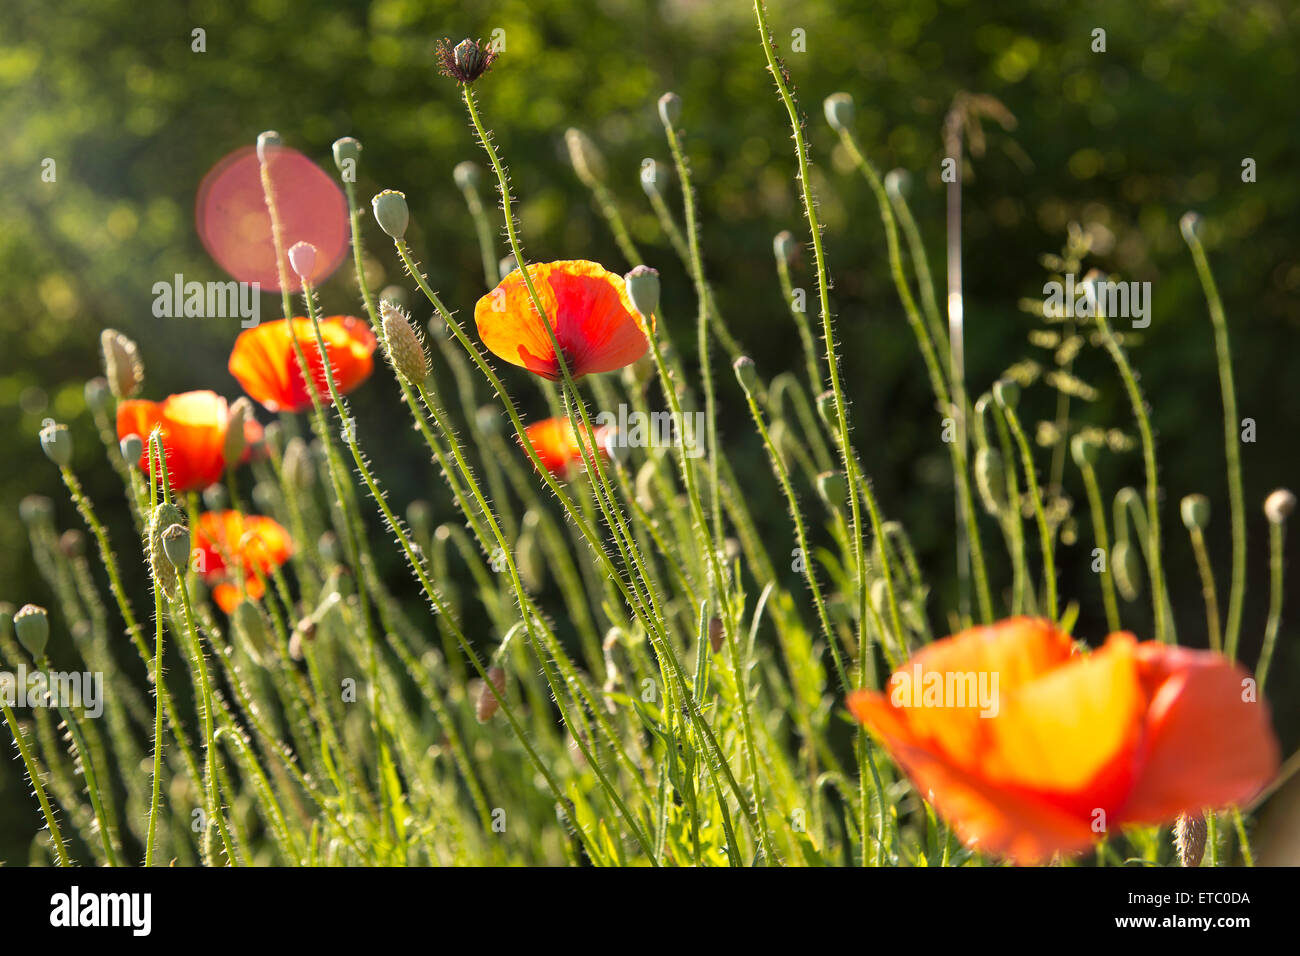 Orange Poppies and flower stems rise up towards the sun with lens flare. - Stock Image